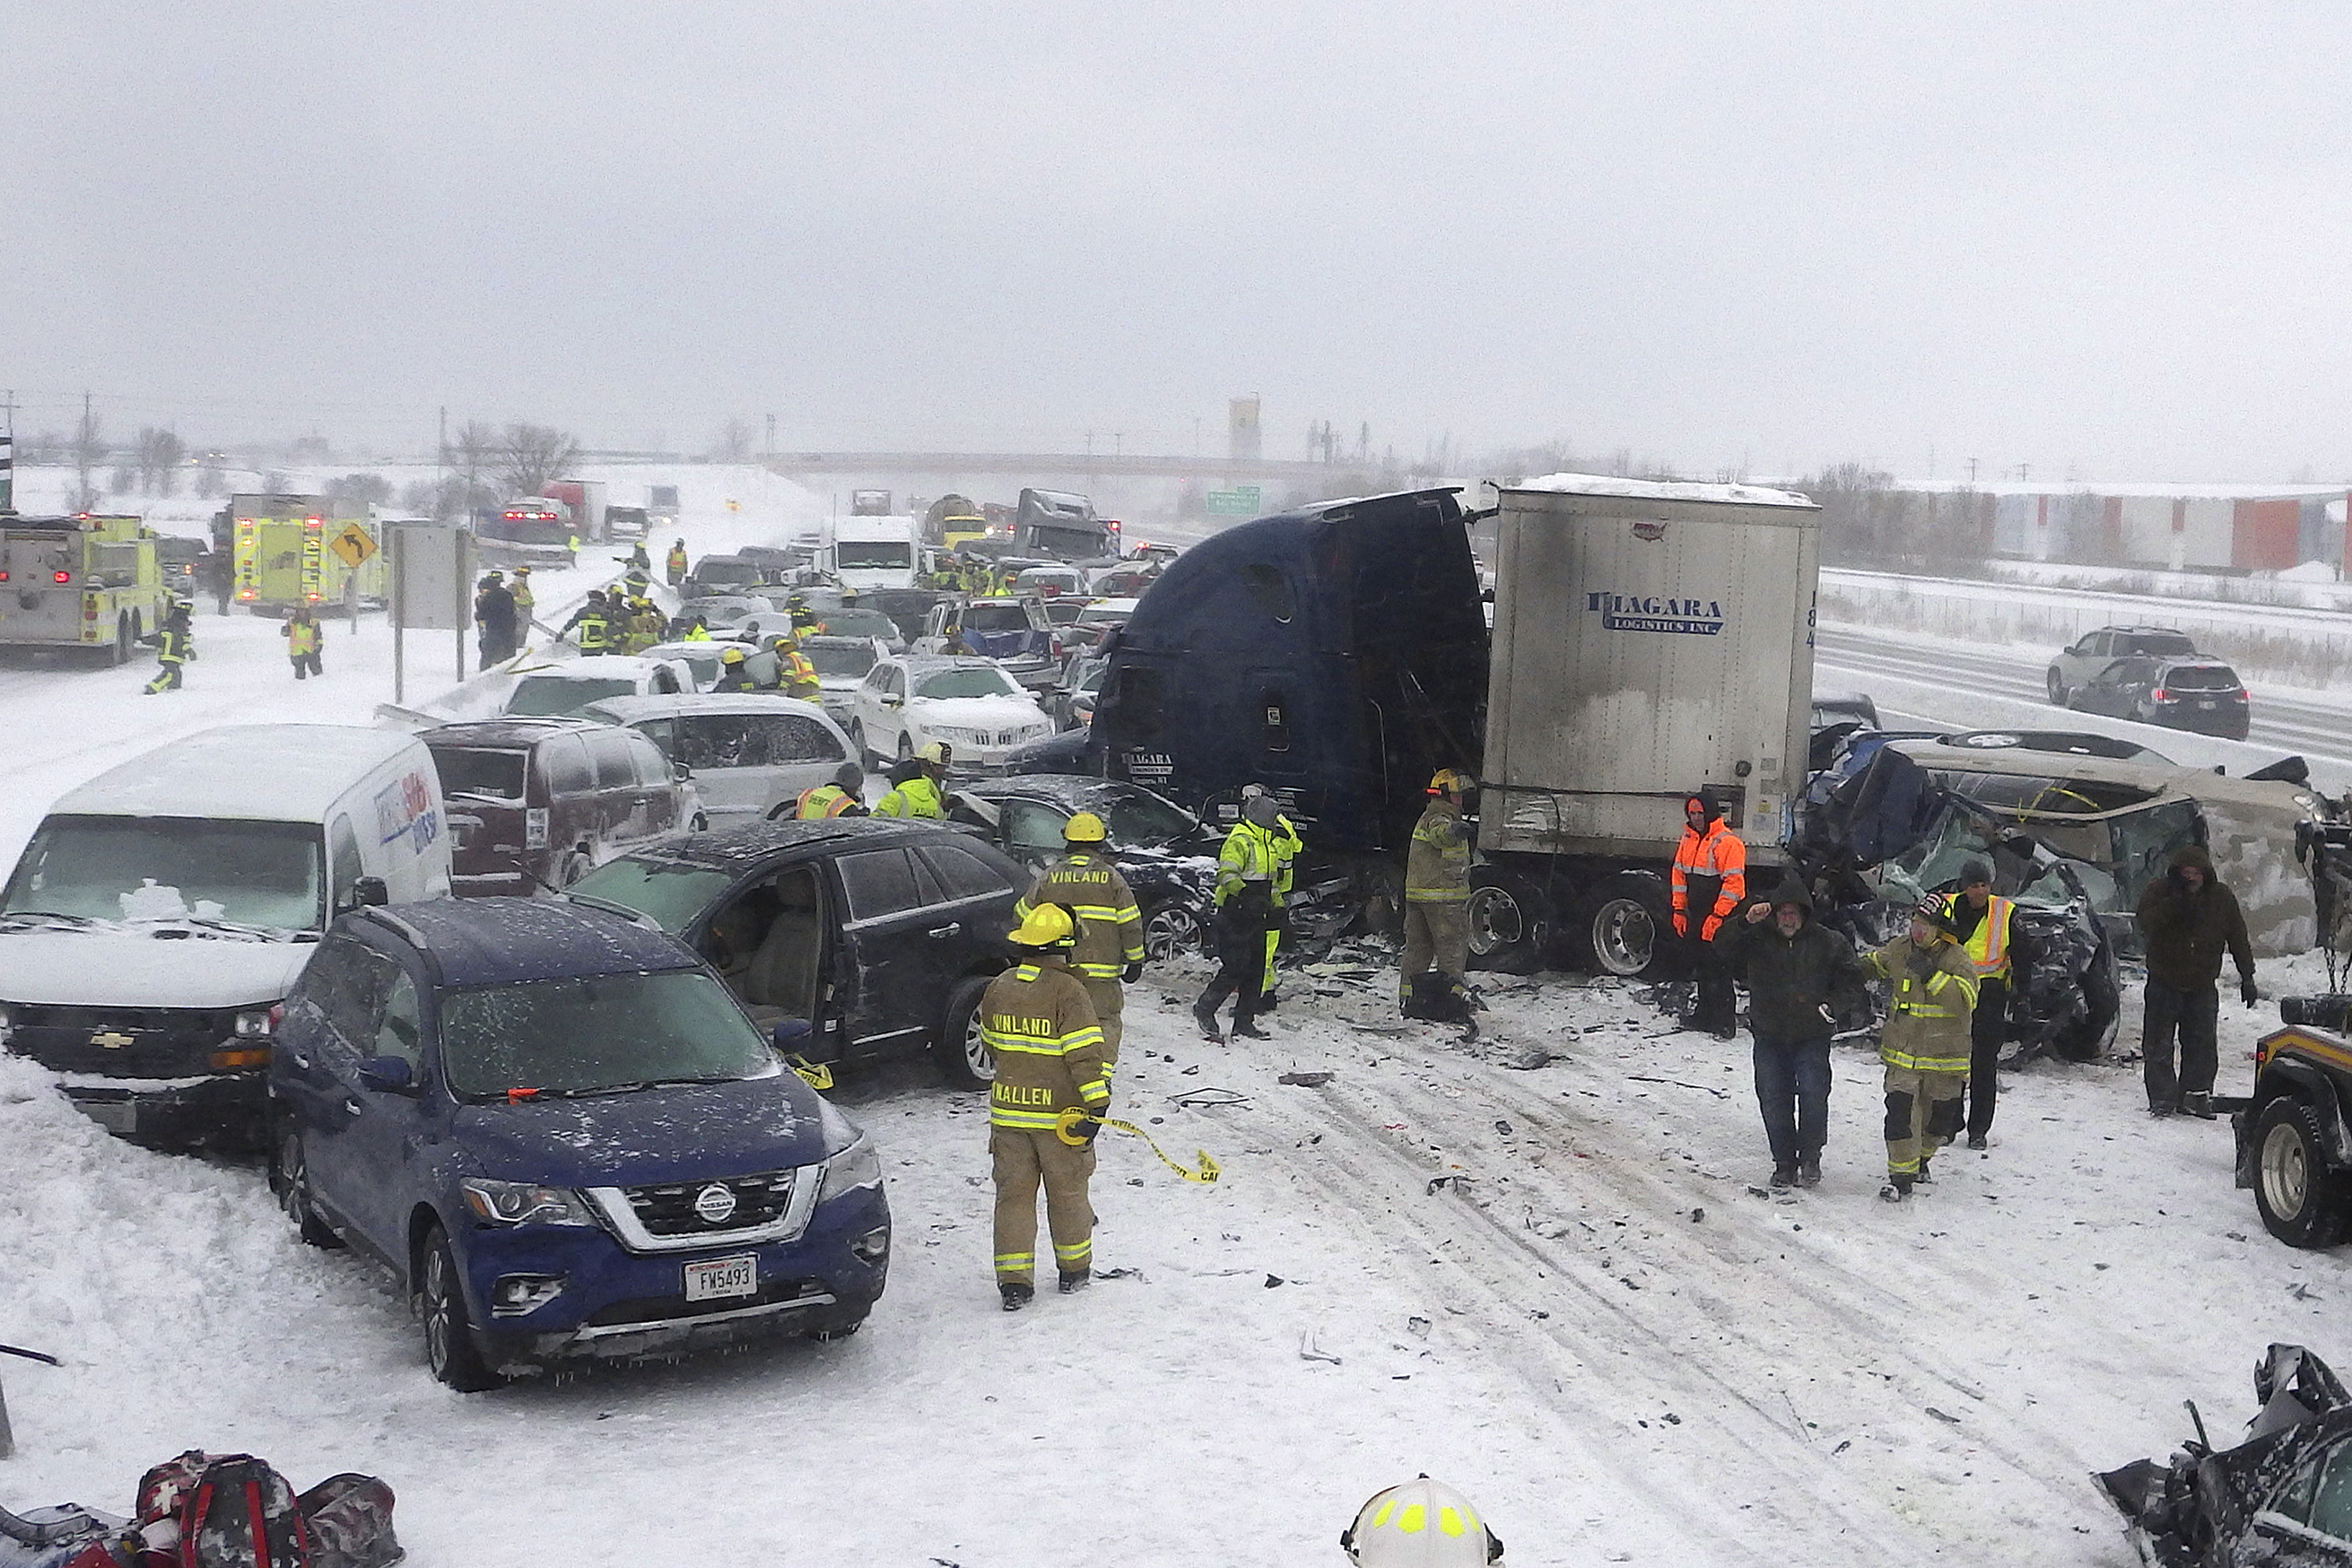 131-car pileup: 911 calls and video released from the